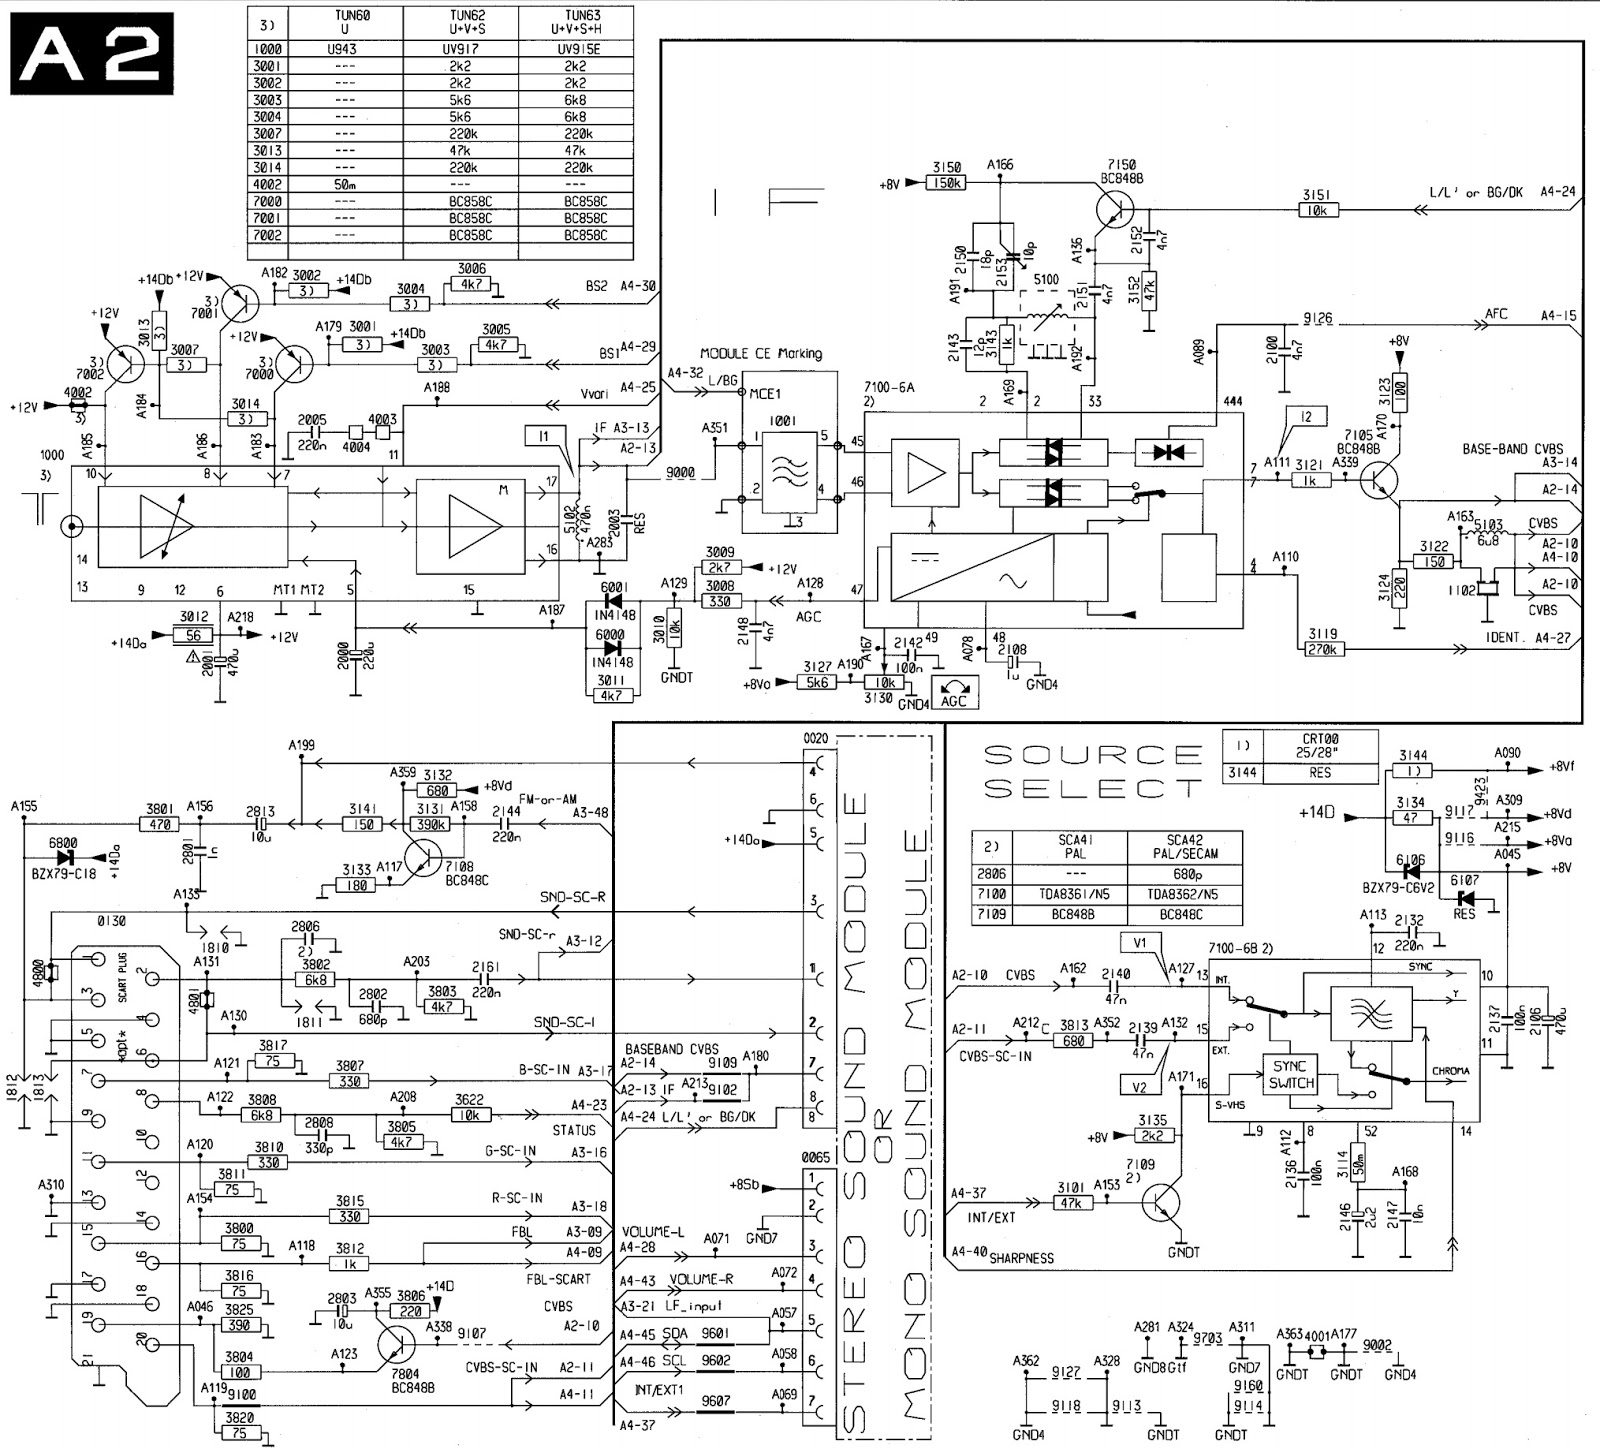 philips 286ns 05 chassis comet circuit diagram full schematic circuit diagramfull click on the schematic to magnify [ 1600 x 1449 Pixel ]